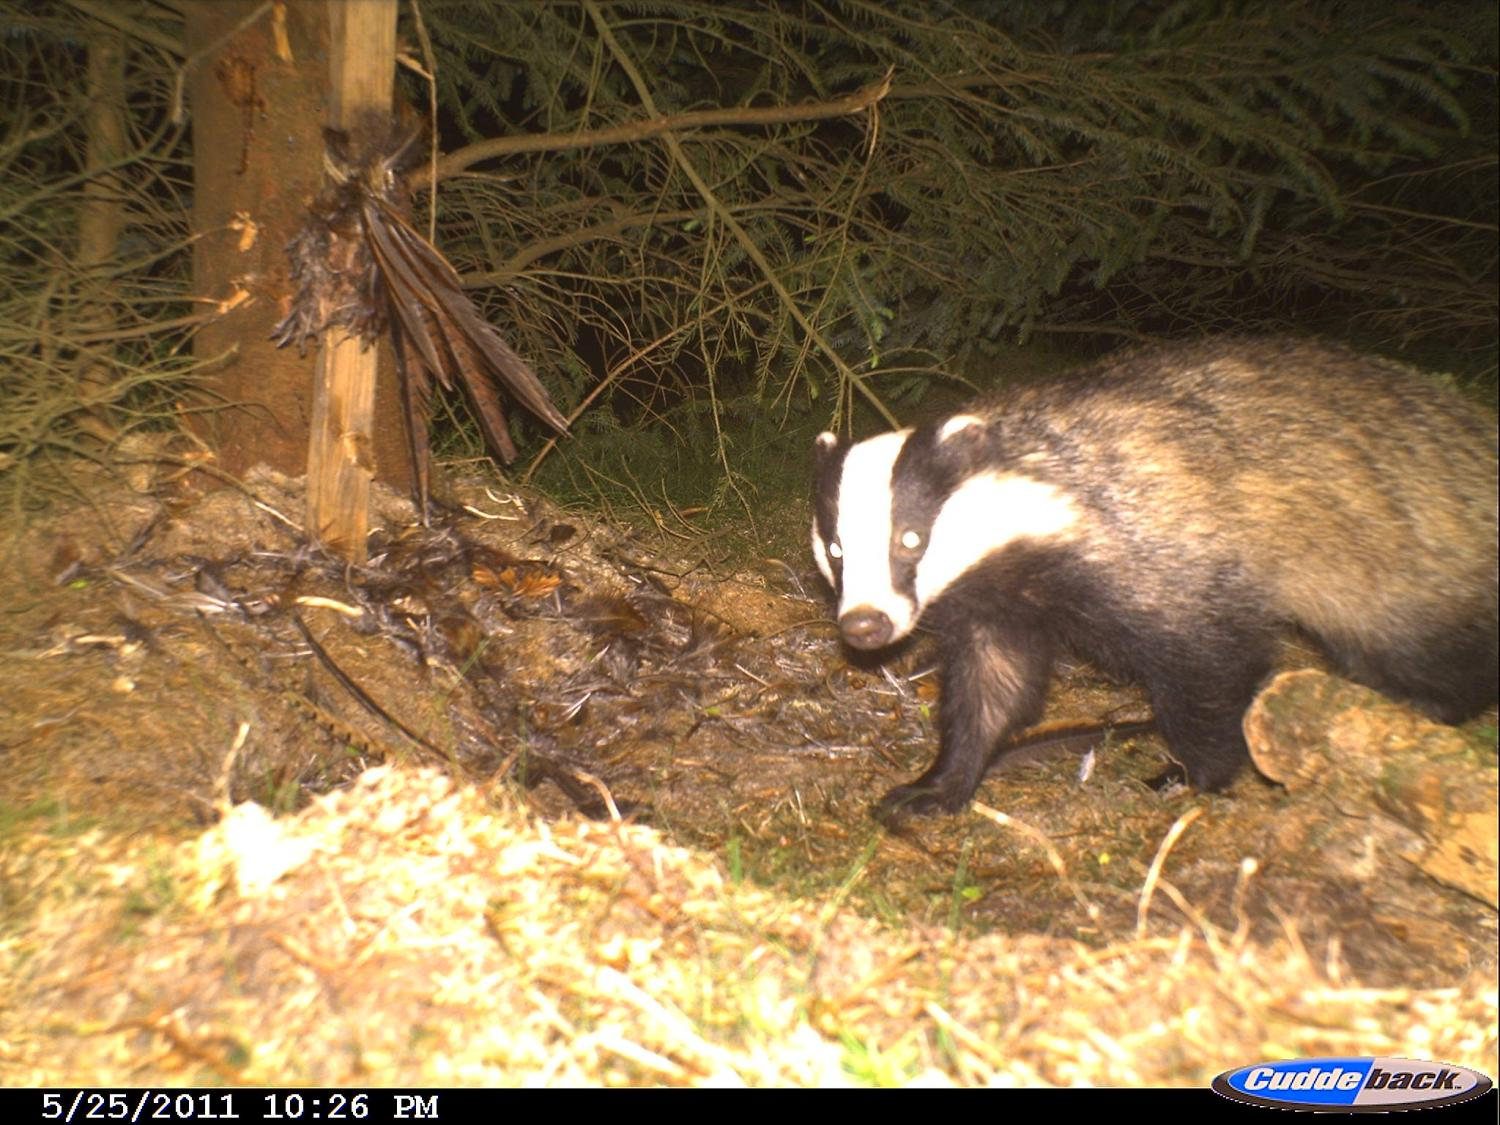 badgers highlight the complexity of species responses to